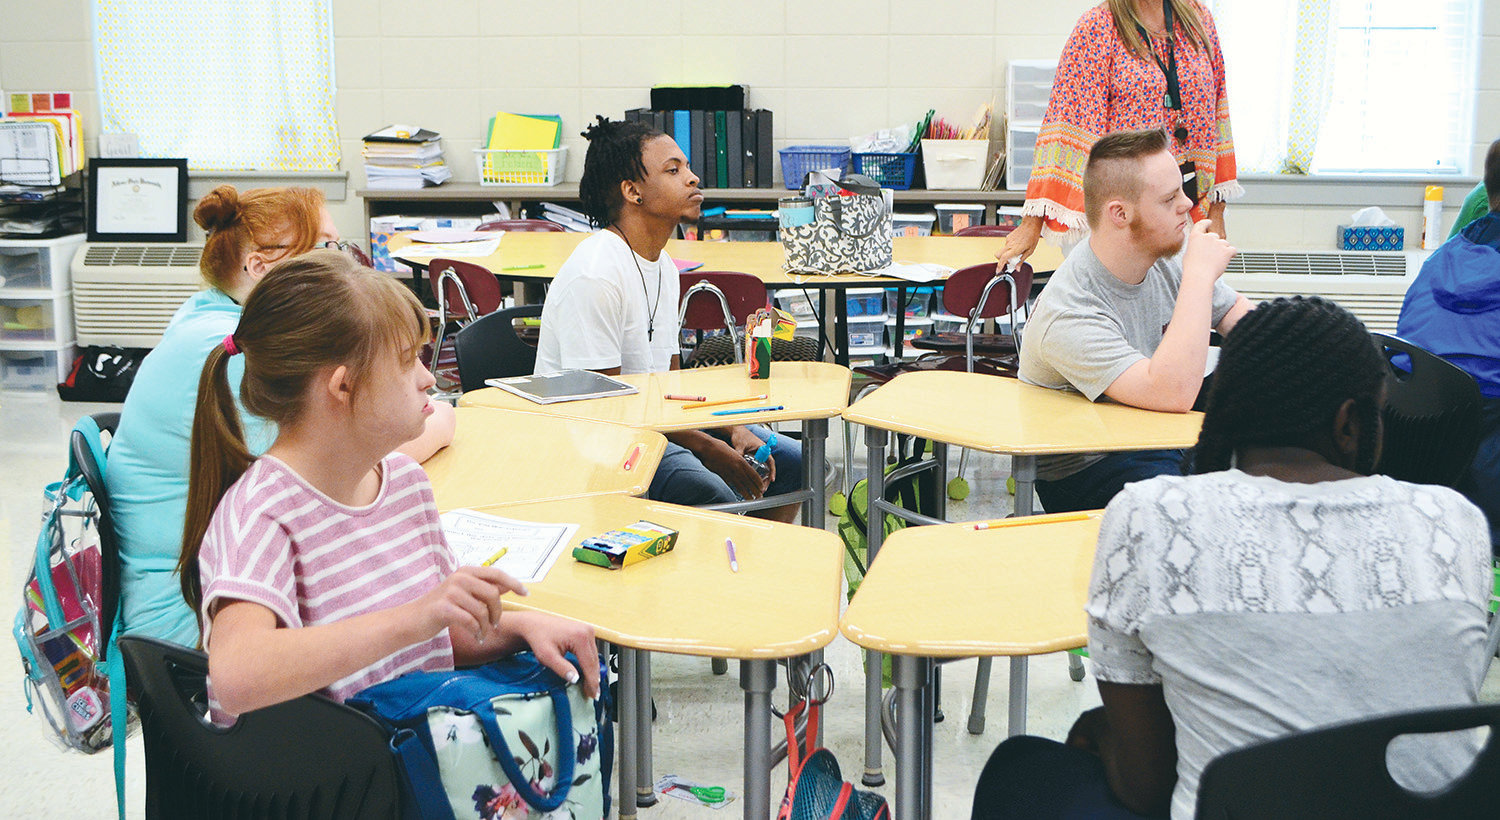 Jasper City Schools will be piloting a Developmental Success Program during the 2020-21 school year to help provide a more traditional high school experience for students pursing alternate standards.